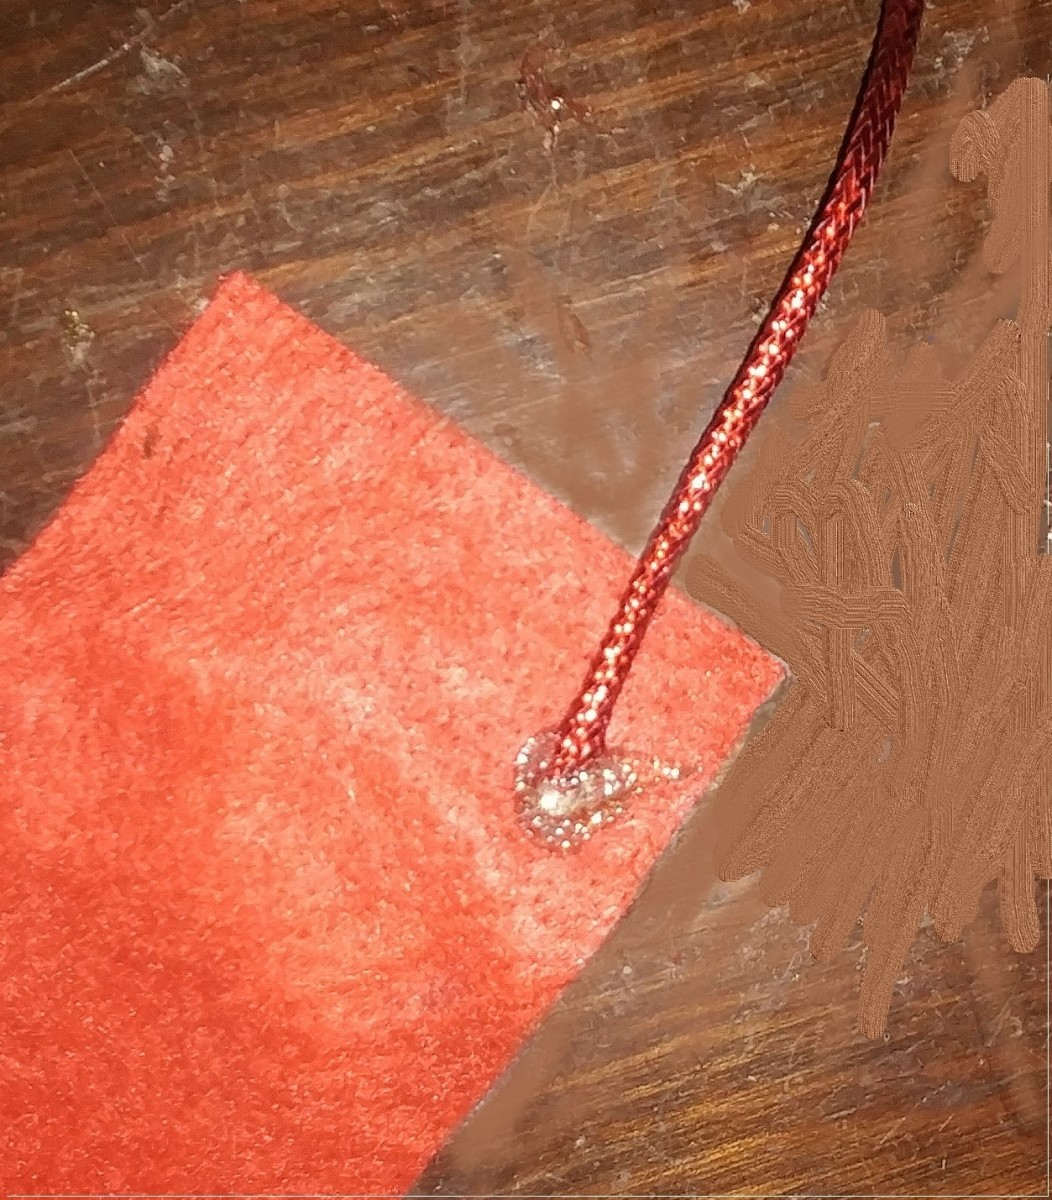 Yarn works well for this bookmark. I used a shiny yarn, but soft red yarn works as well.